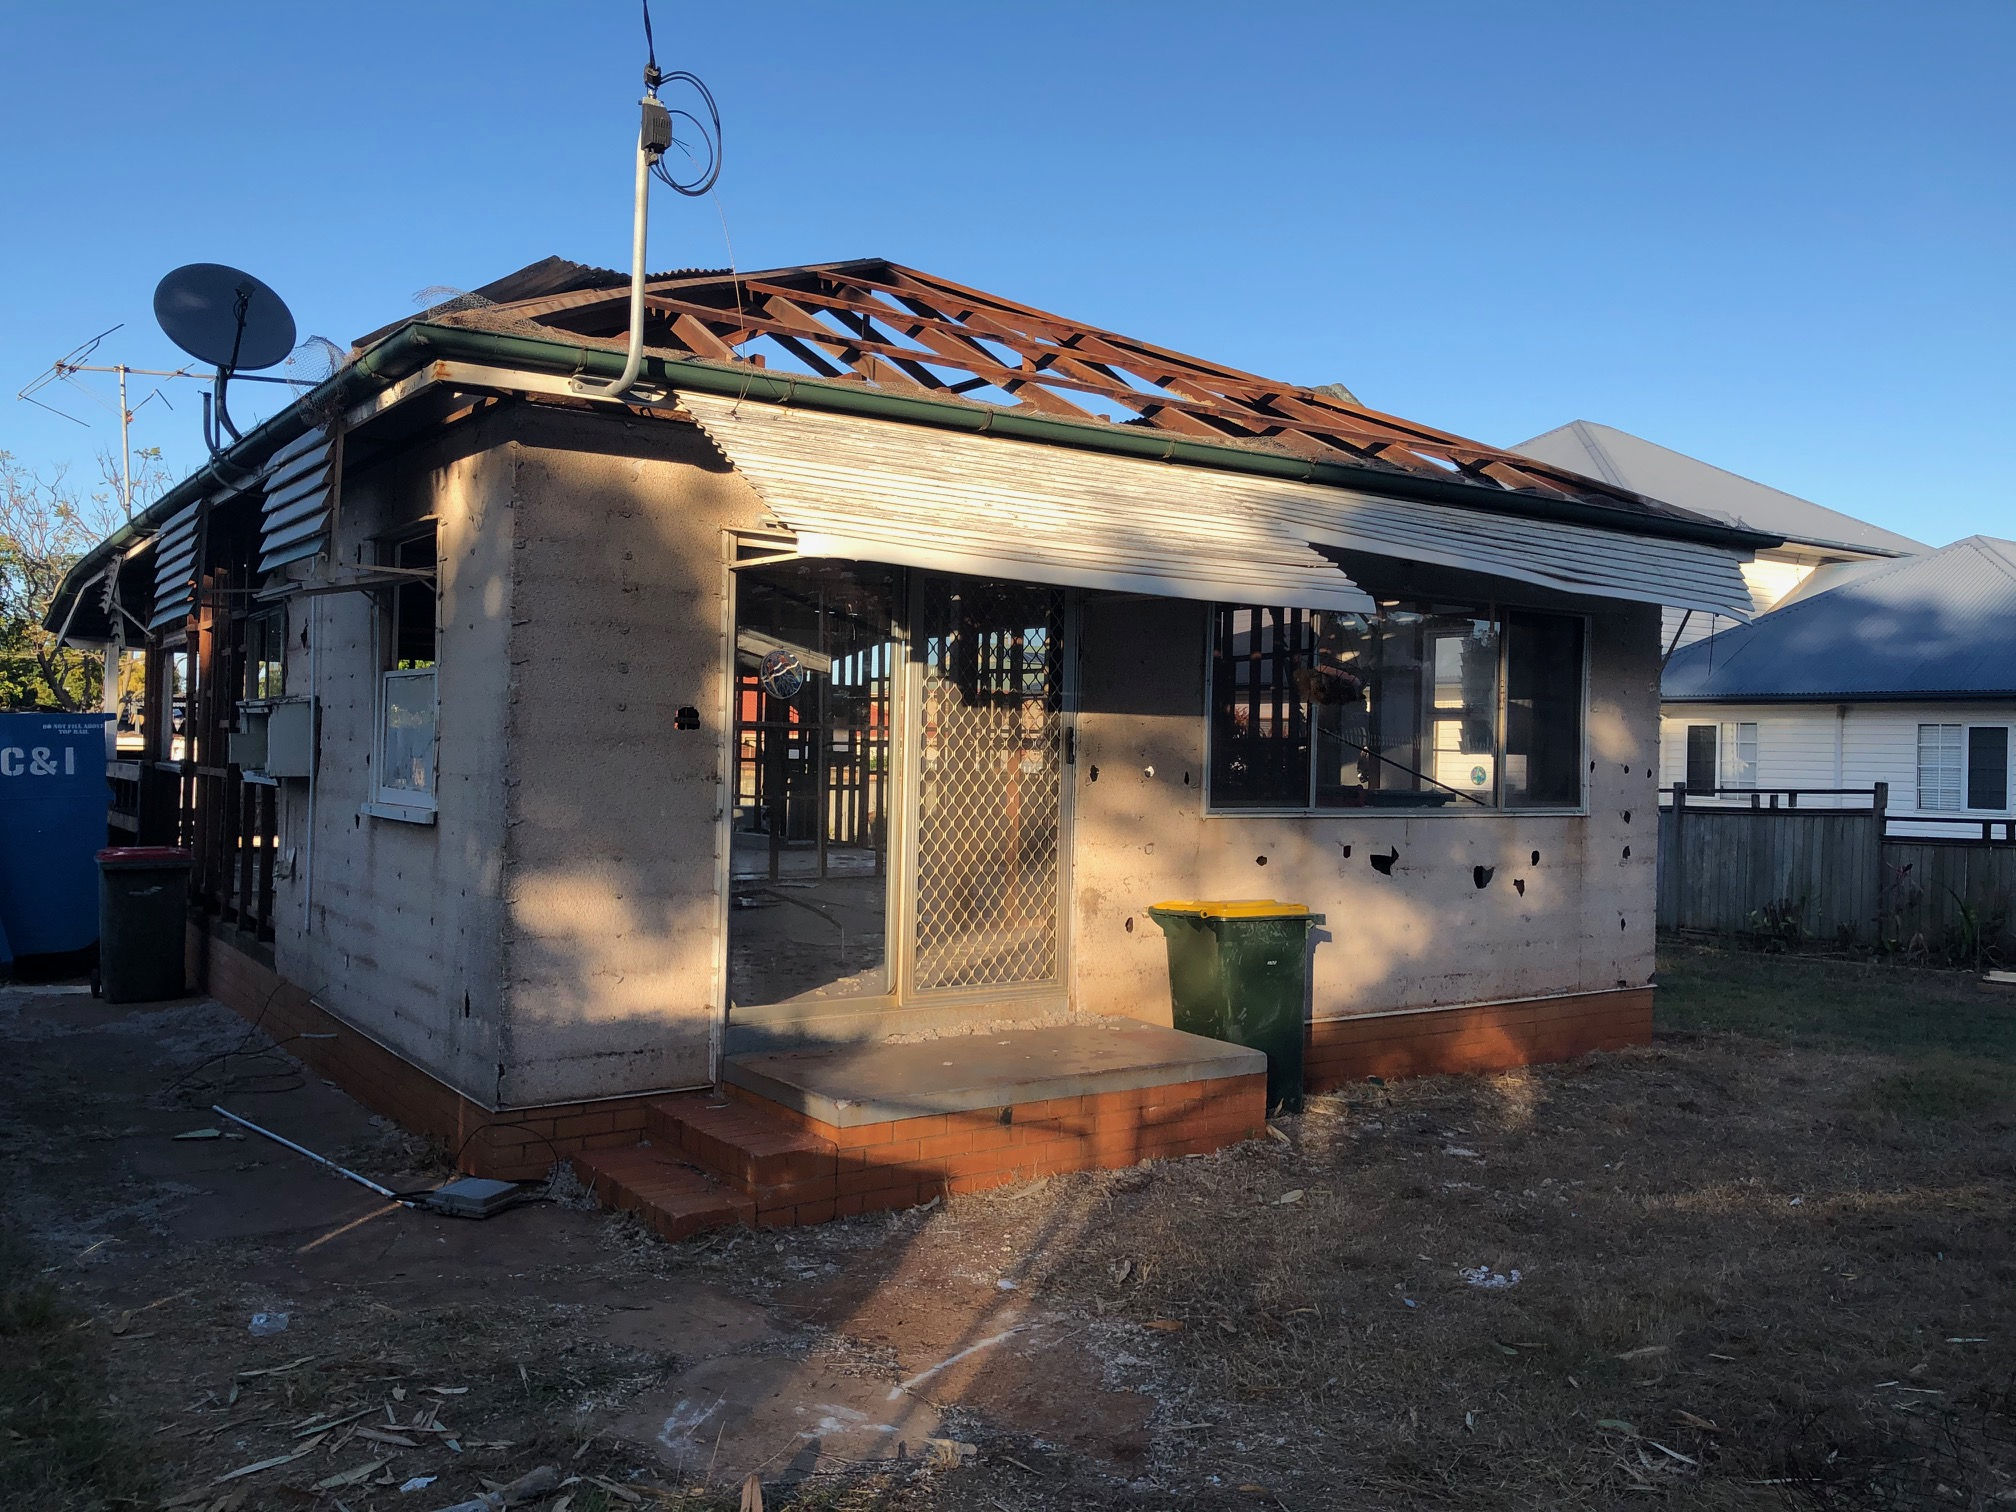 Woody Point house after